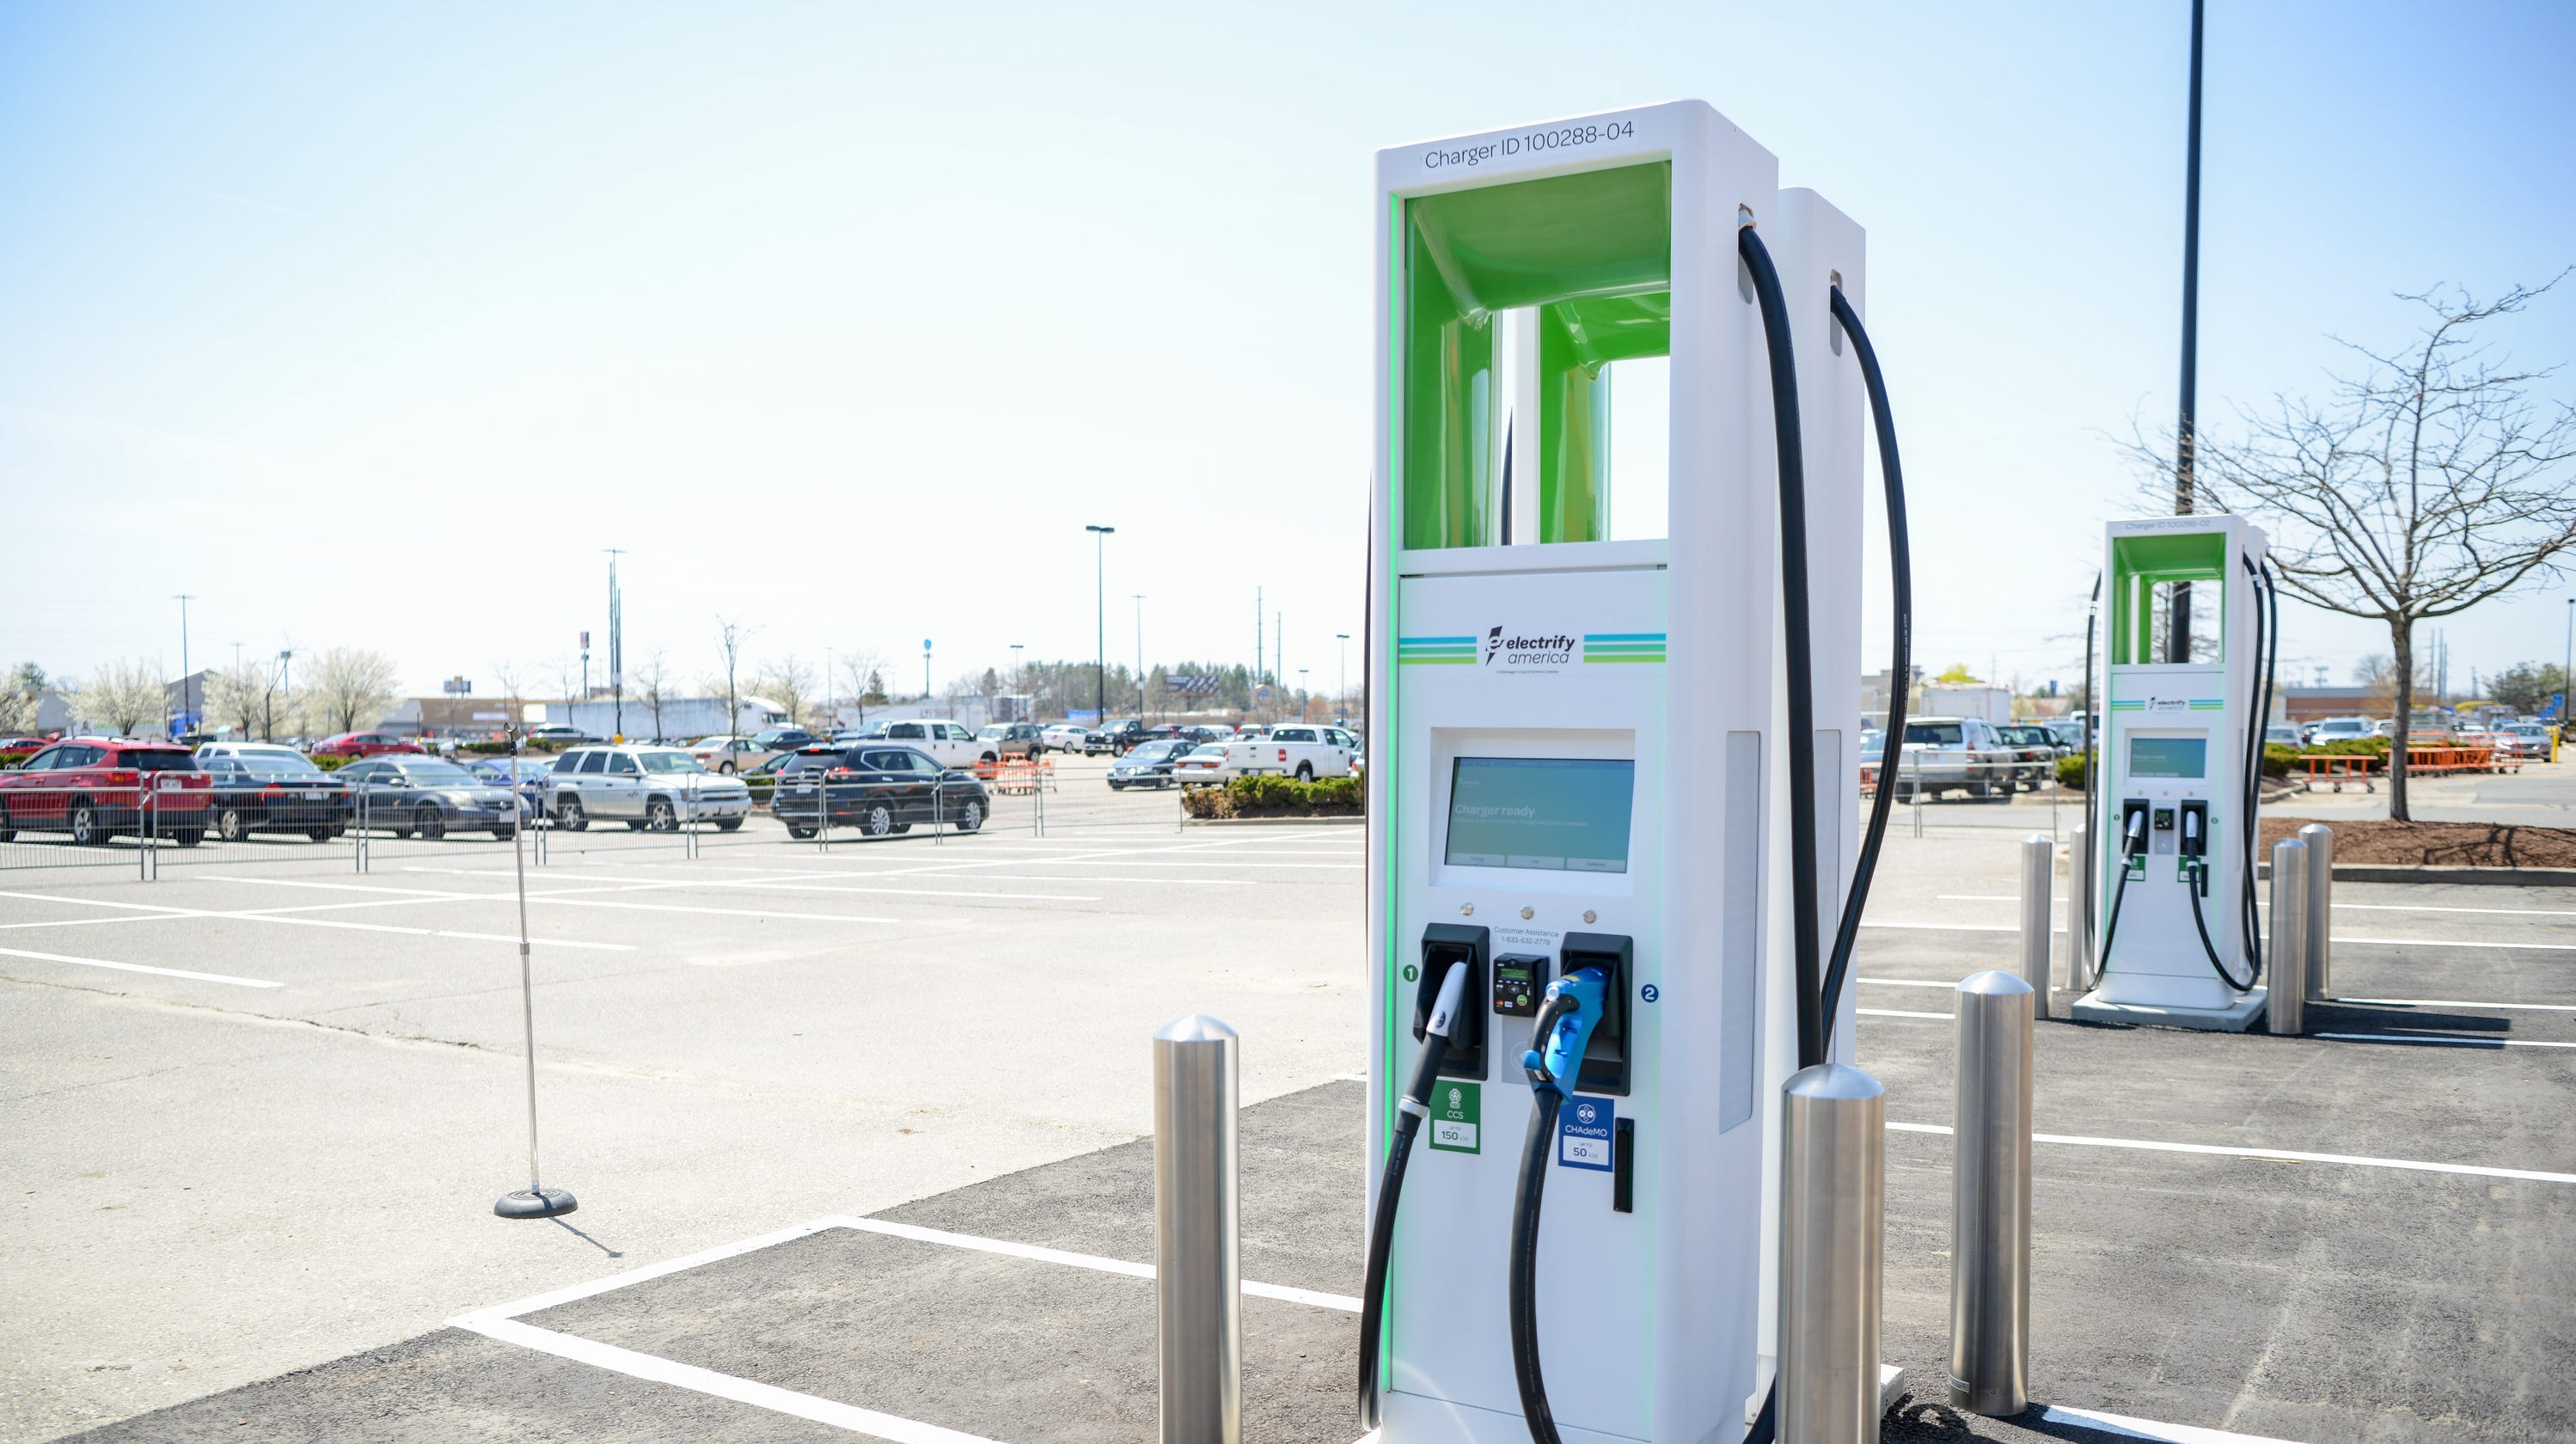 Turnpike To Install Electric Vehicle Charging Station